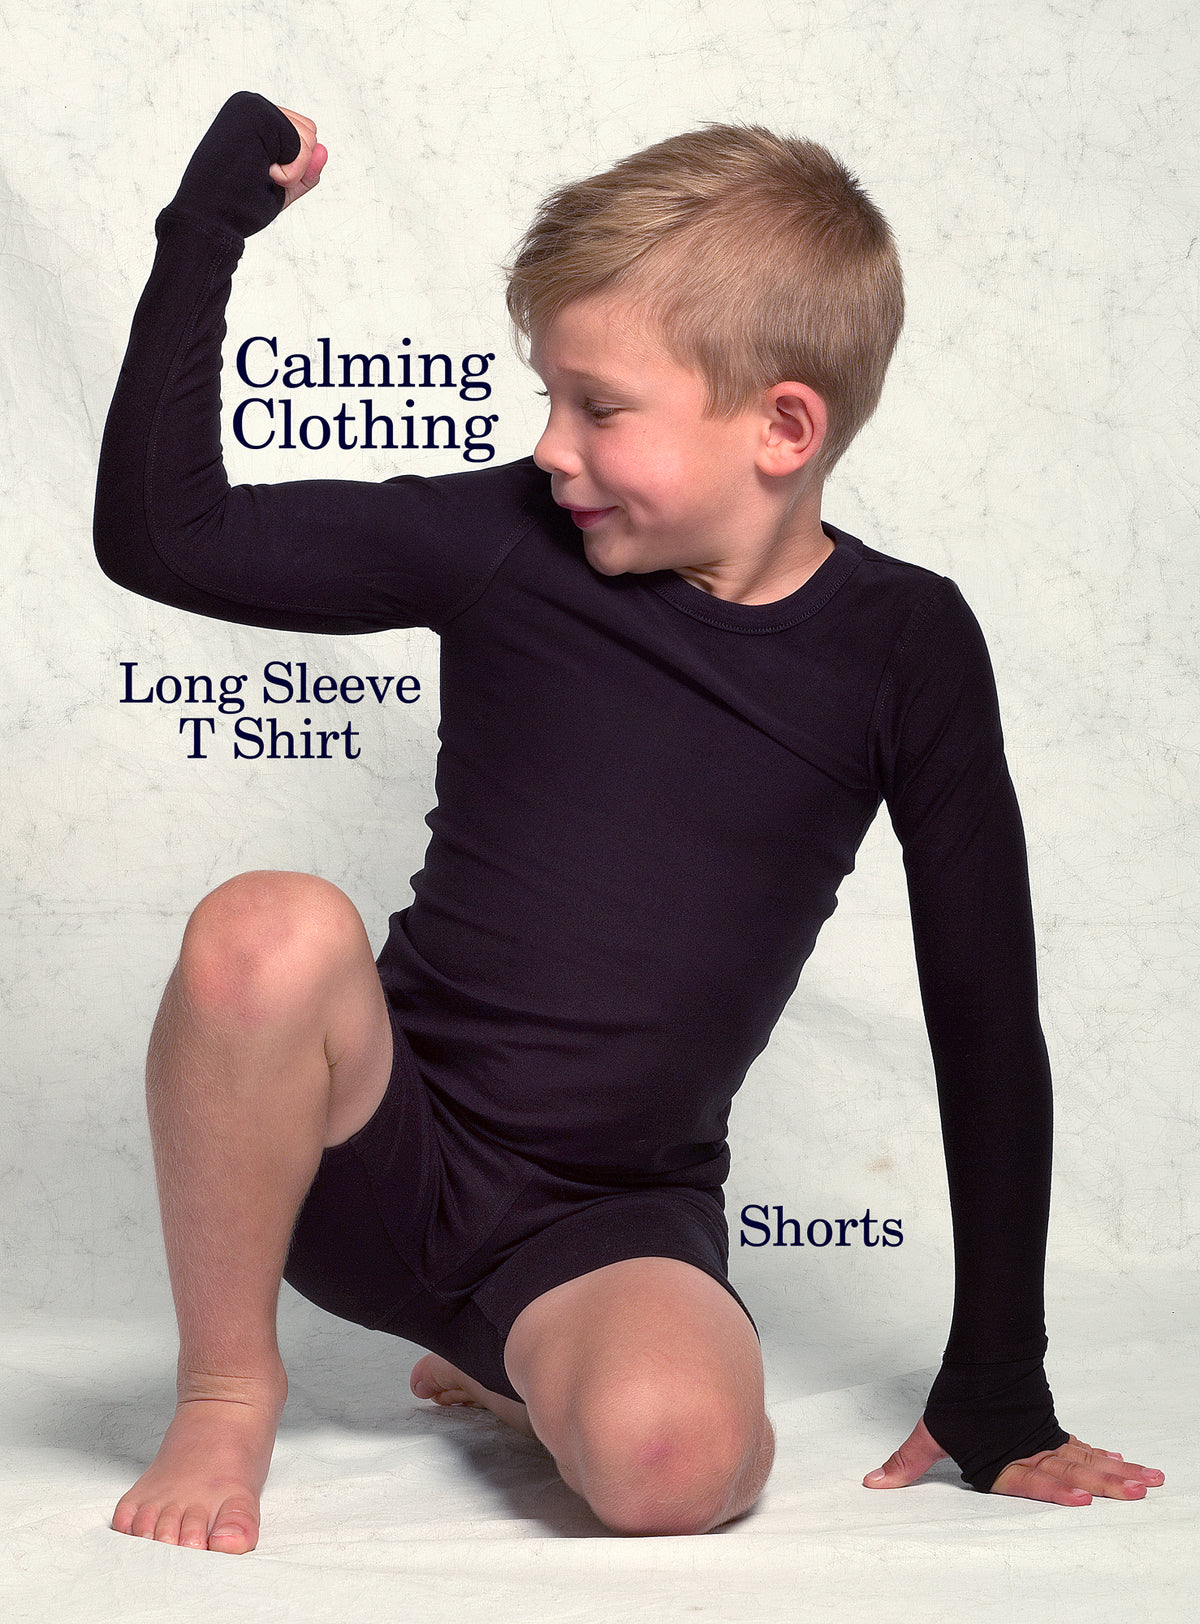 Calming Clothing Shorts